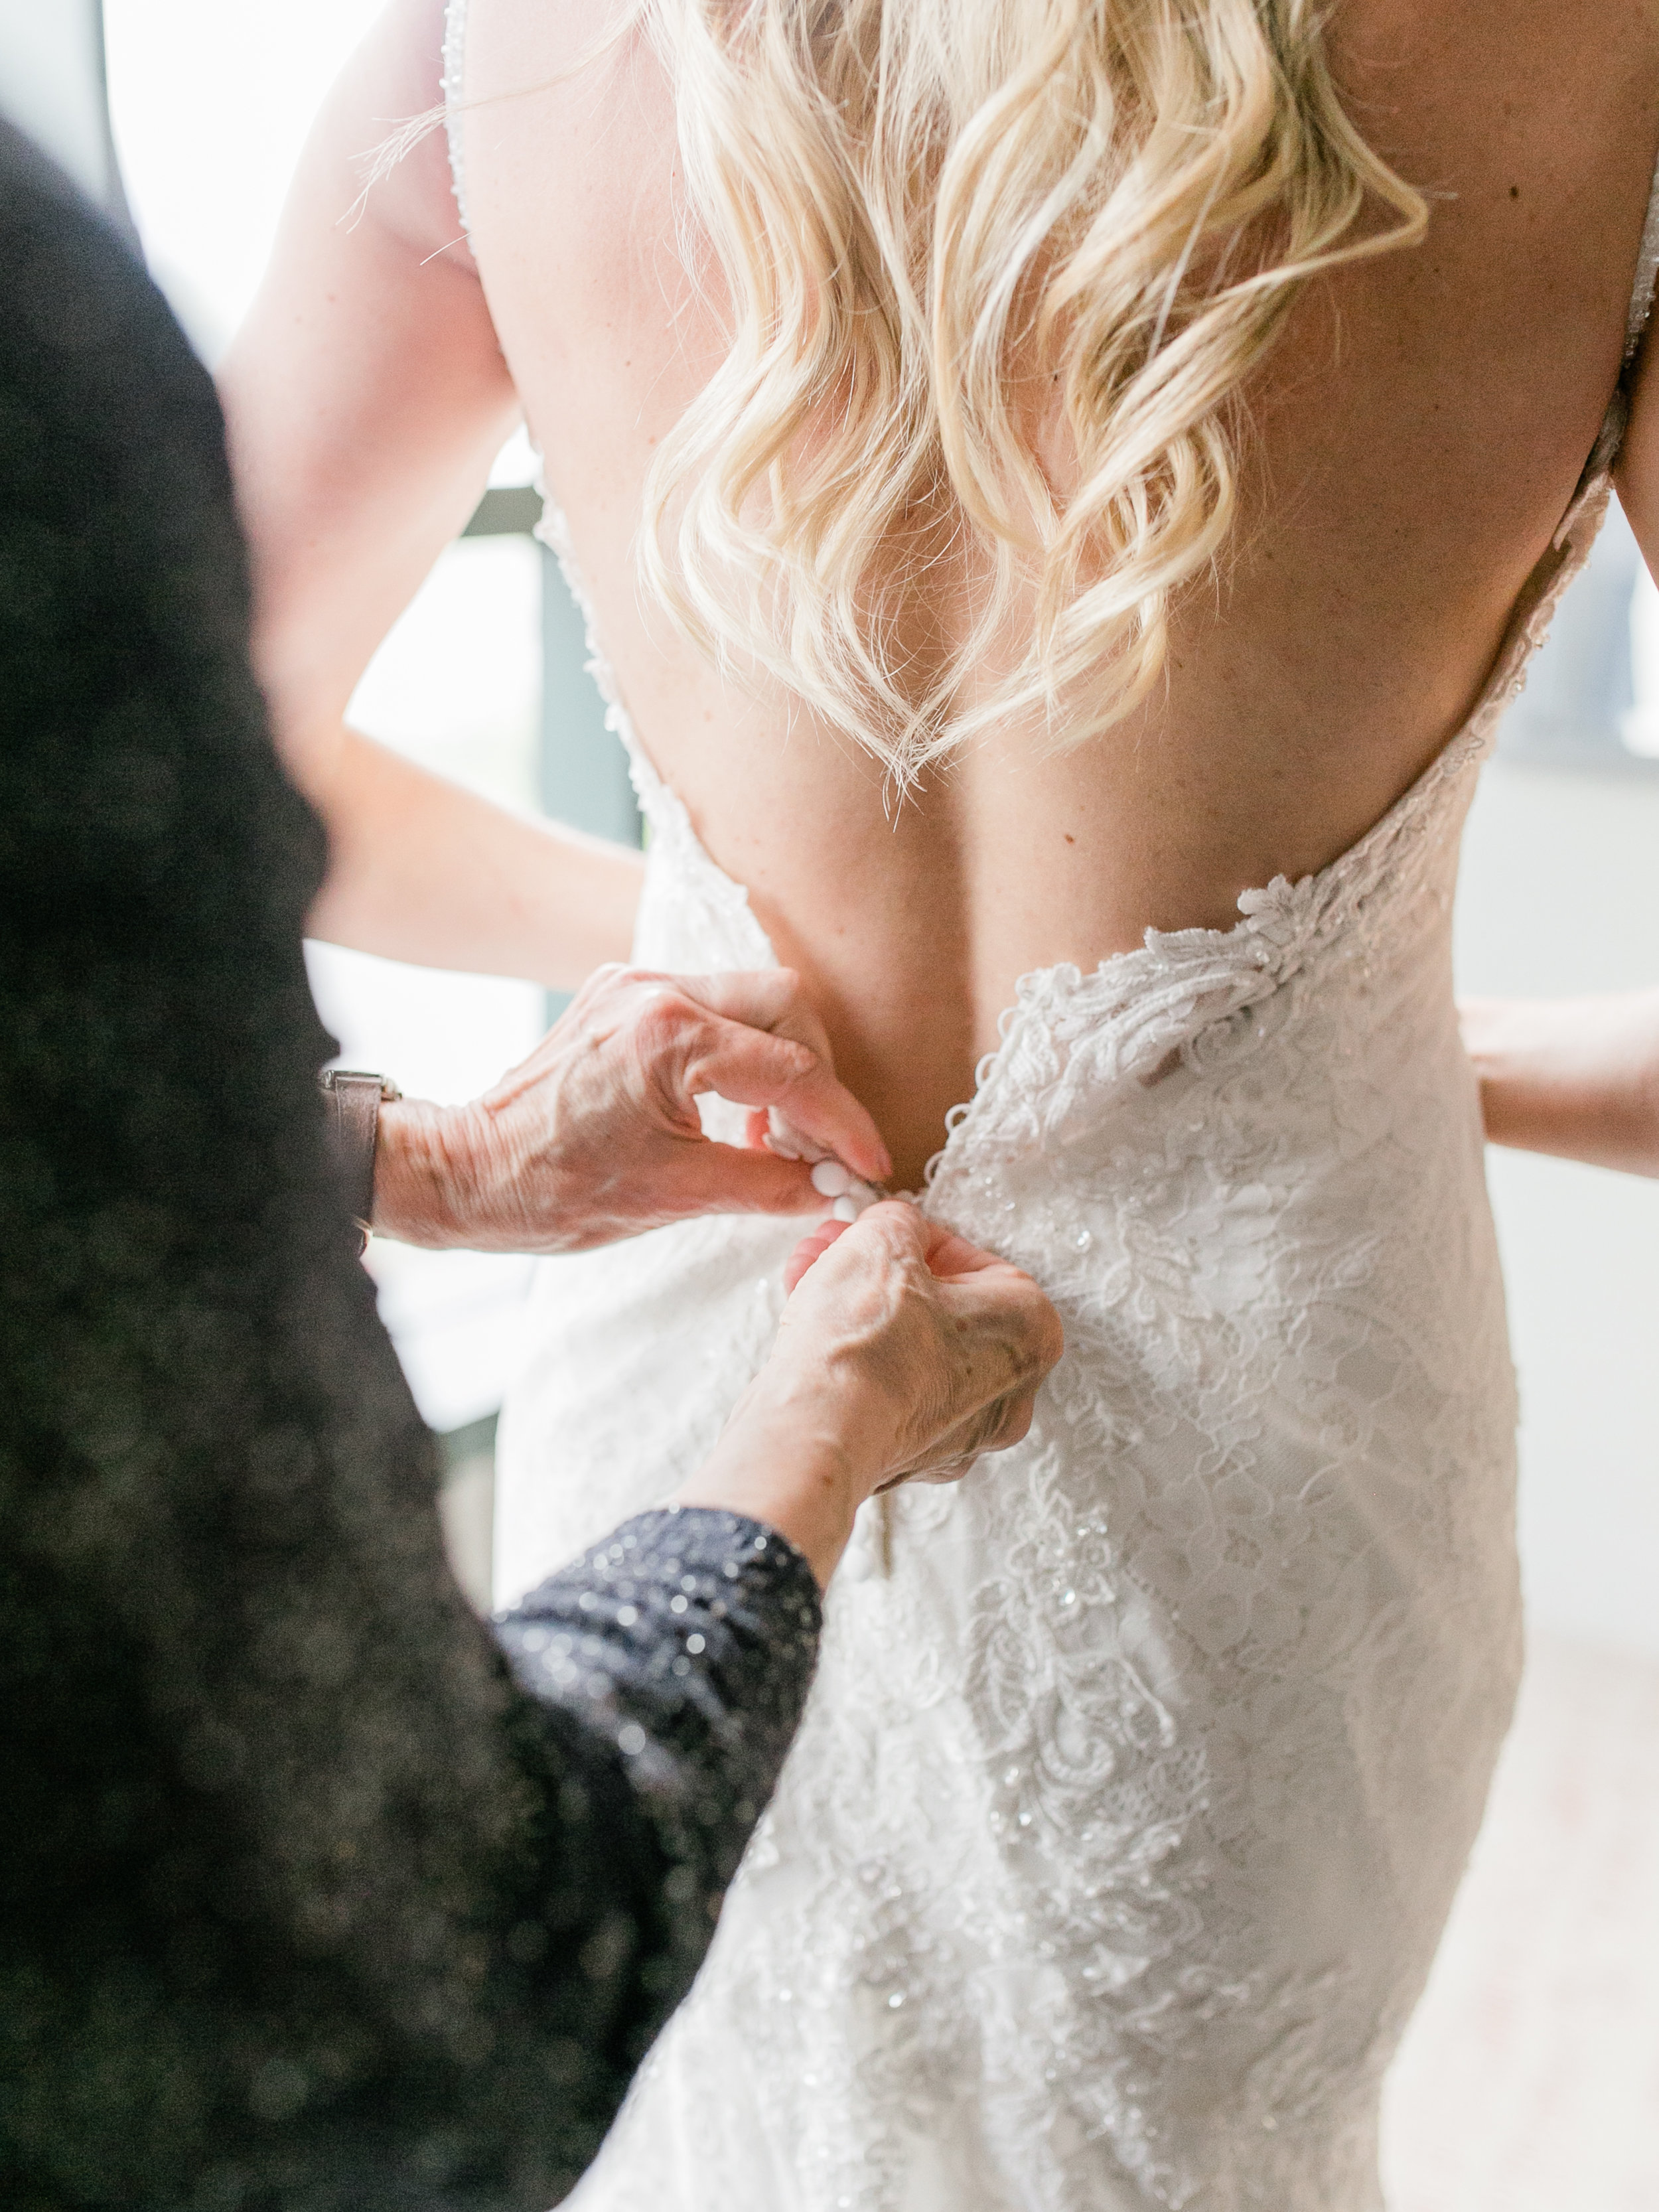 RobynMikeWedding_Evermore__StephanieMasonPhotography-44.jpg